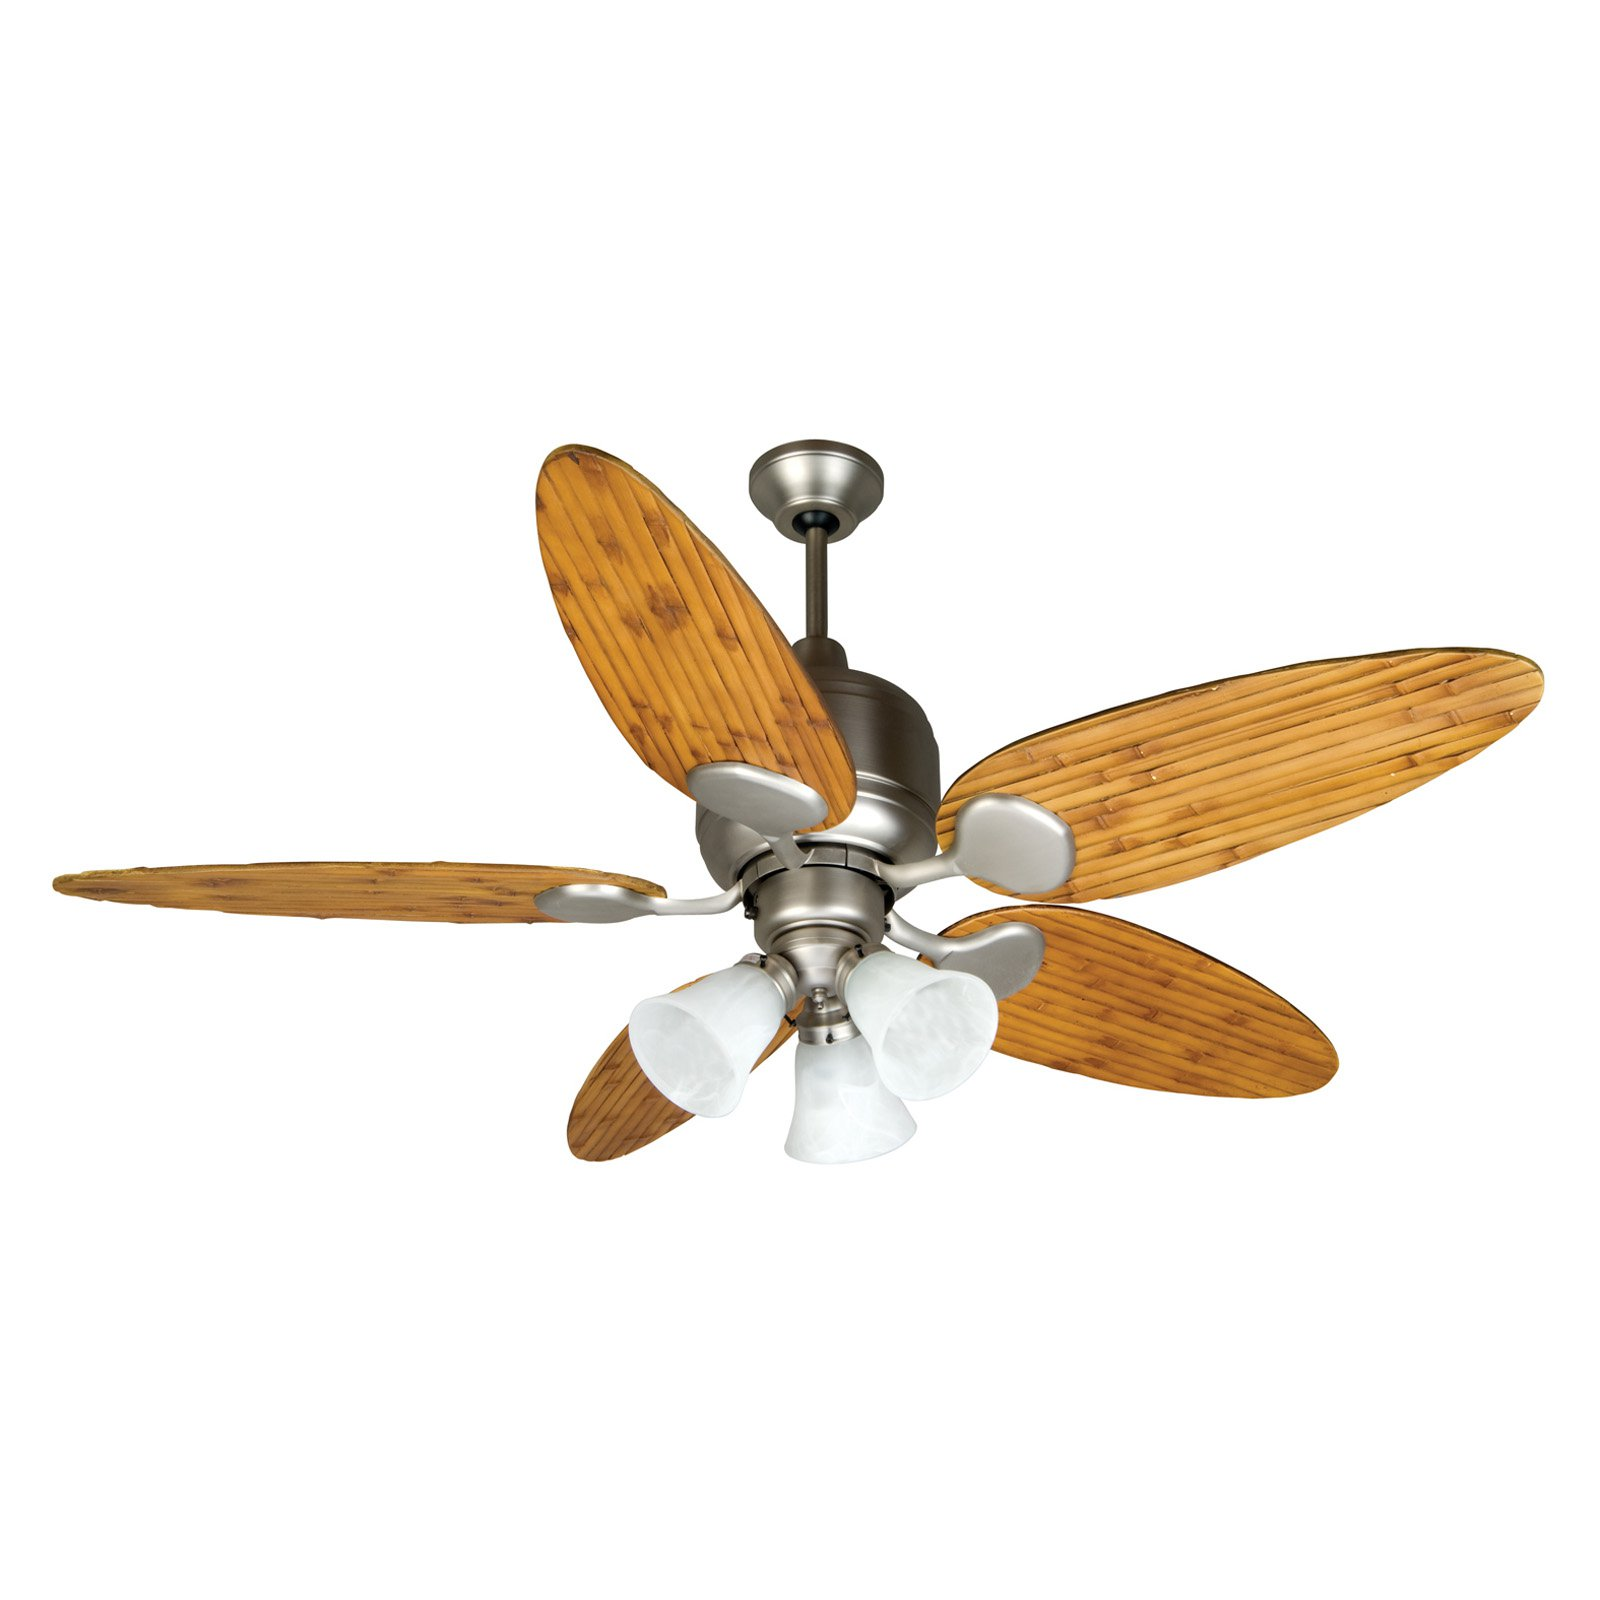 Craftmade Kona Bay 52 in. Indoor/Outdoor Ceiling Fan with Oval Blades